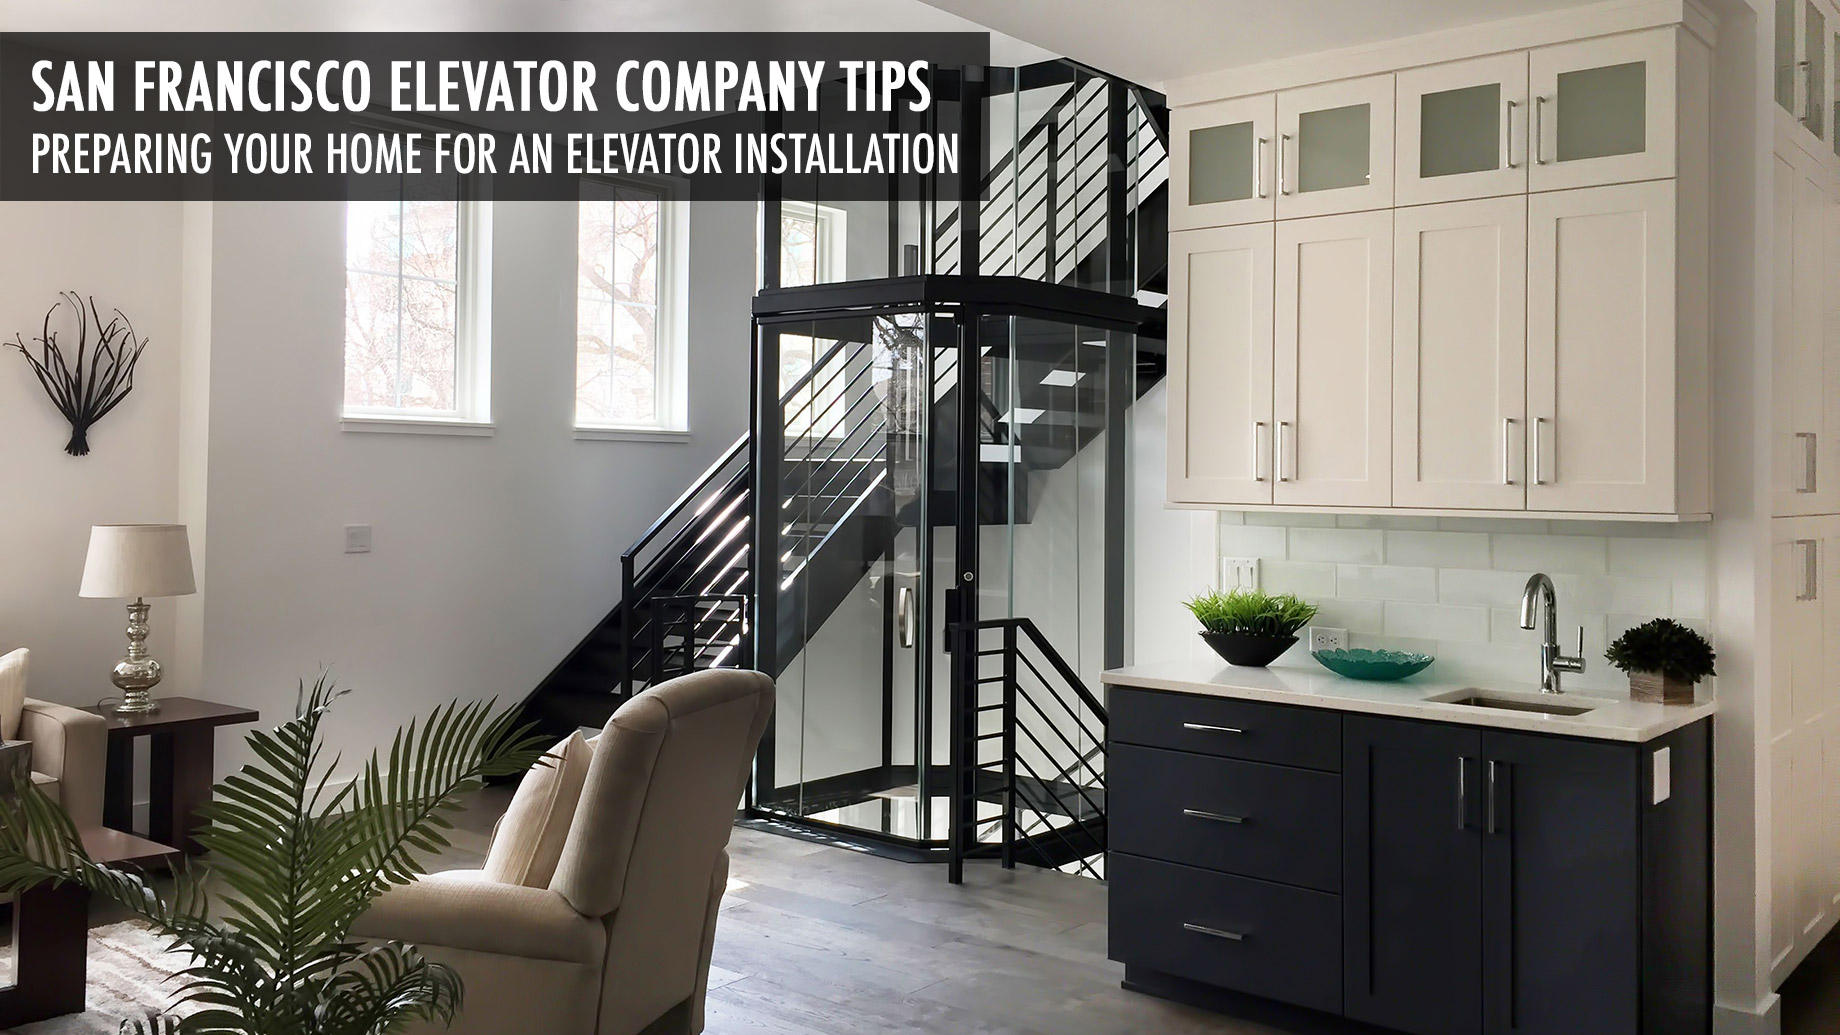 San Francisco Elevator Company Tips - Preparing Your Home for an Elevator Installation